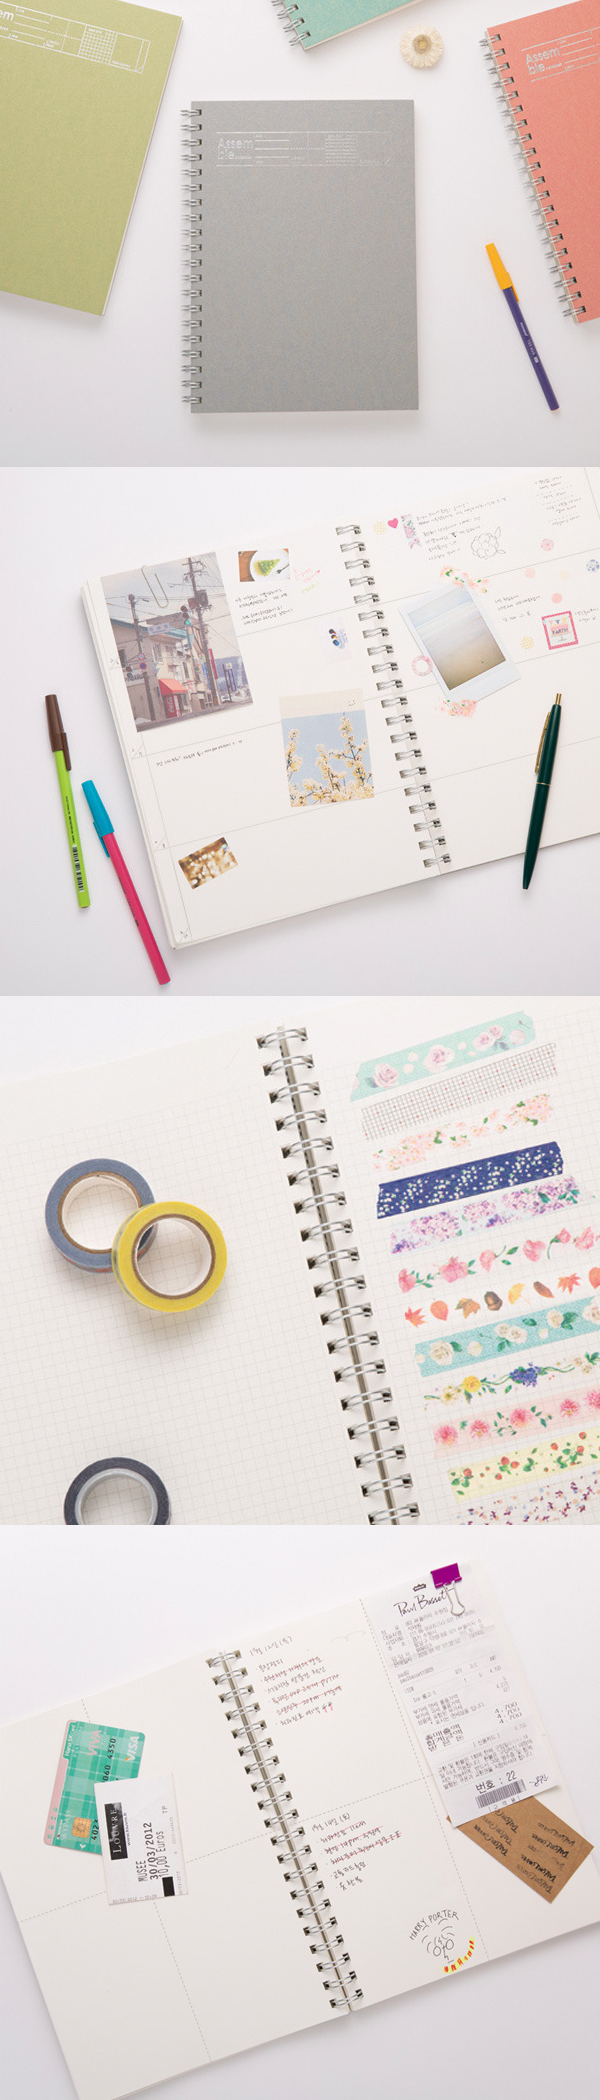 Lined Note, Large Grid Note, Grid Note and Weekly Plan Note! 4 types of Notes are all here! Use this versatile notebook for note taking, scheduling, drawing, scrapbooking and so on!